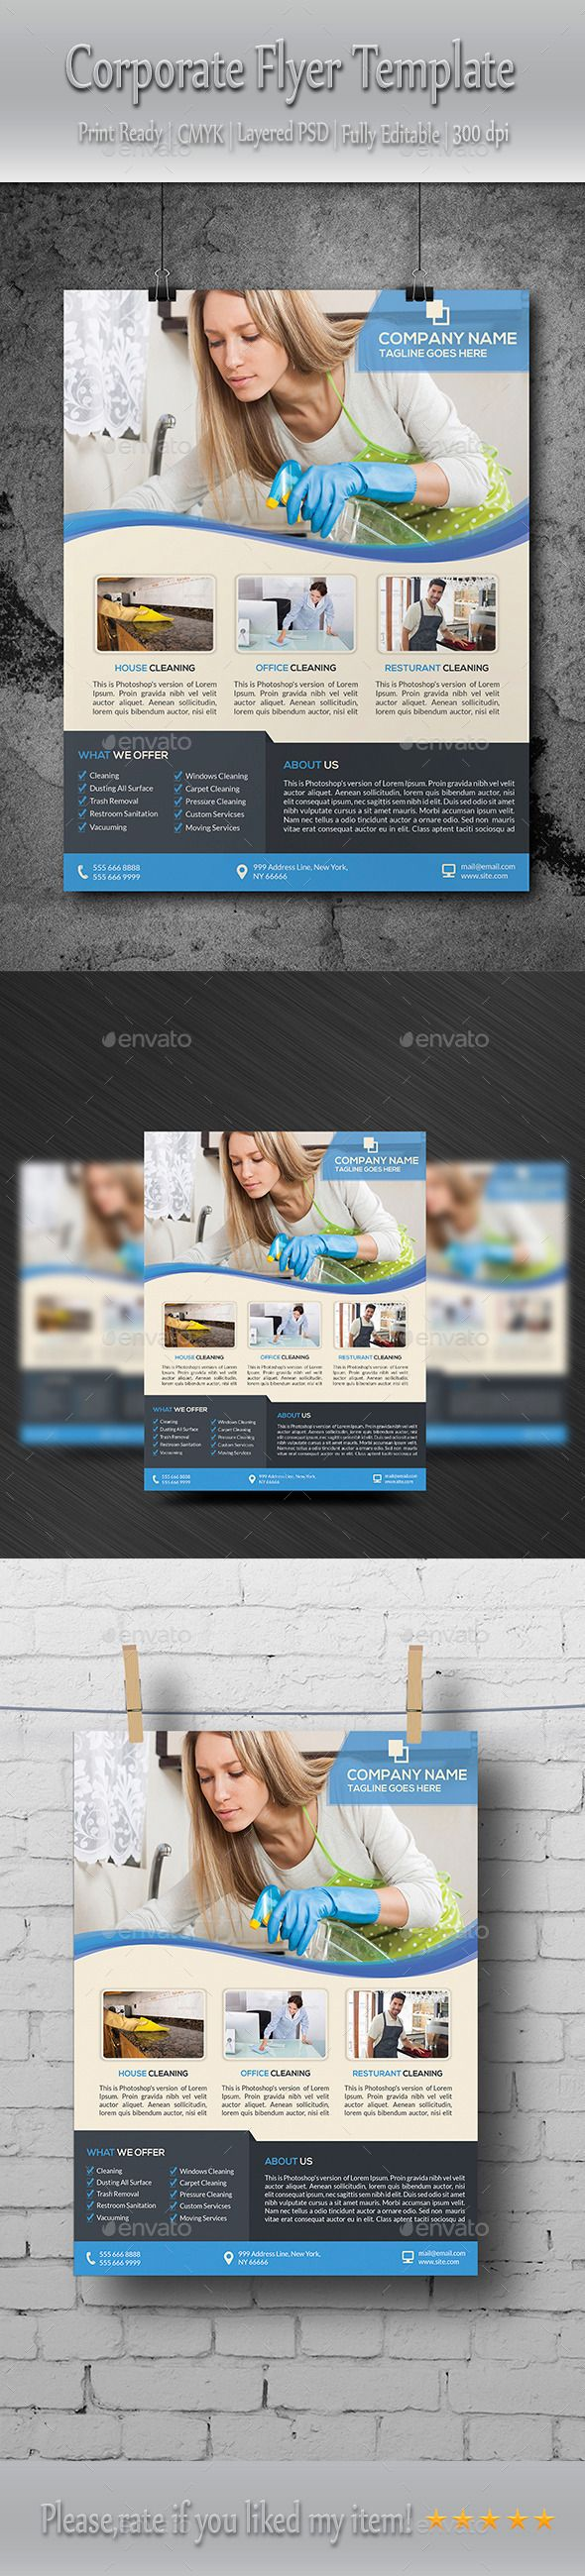 ideas for a cleaning business the o jays cleaning business cleaning services flyer template